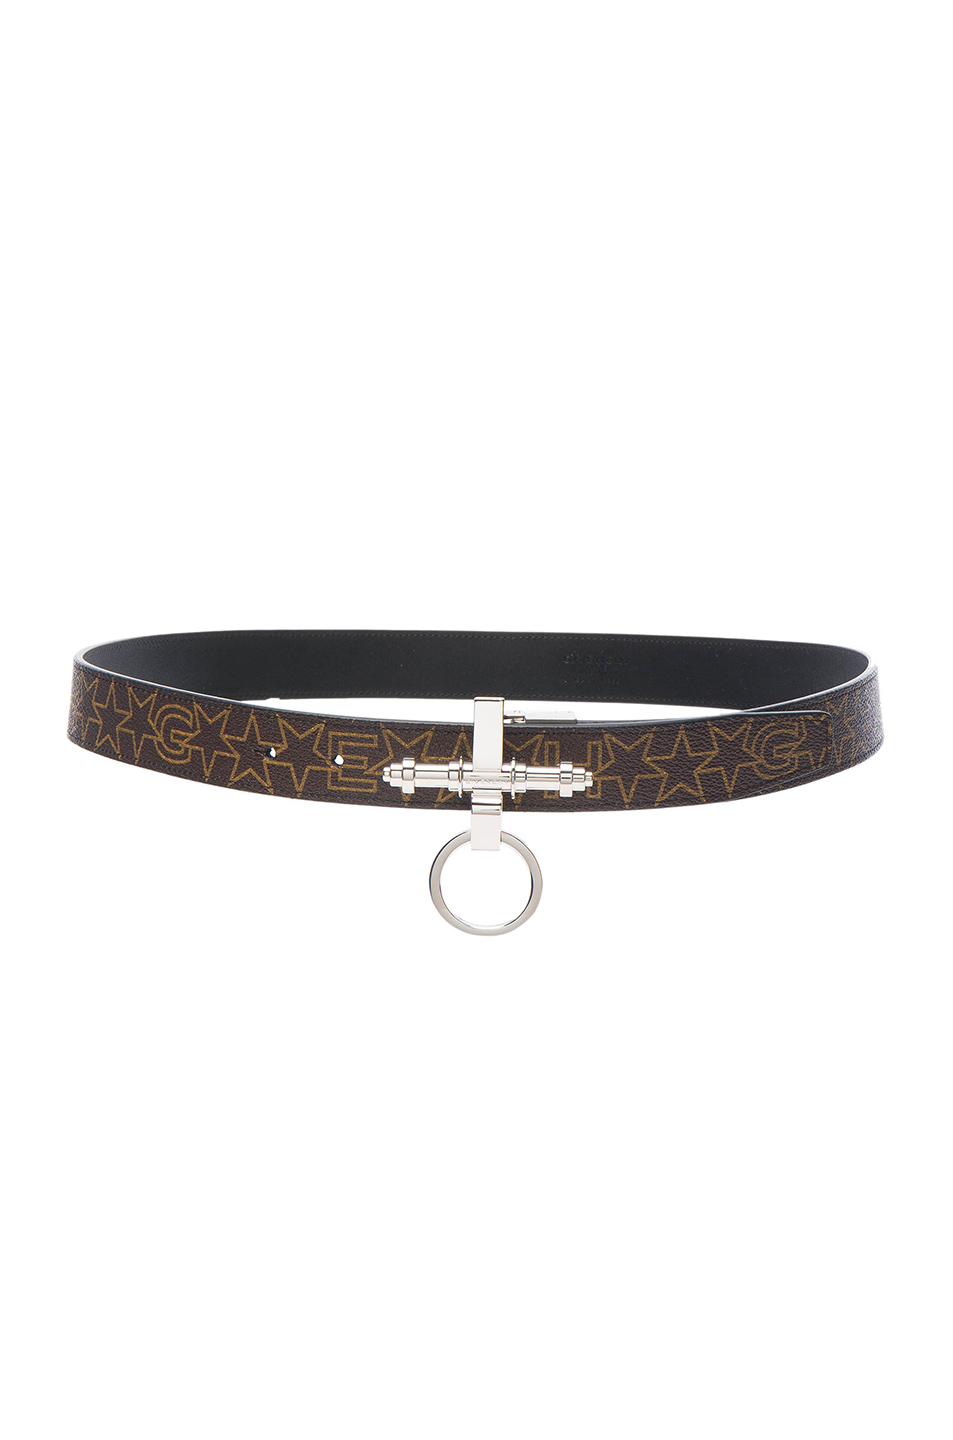 Givenchy Obsedia Belt in Brown,Abstarct,Geometric Print